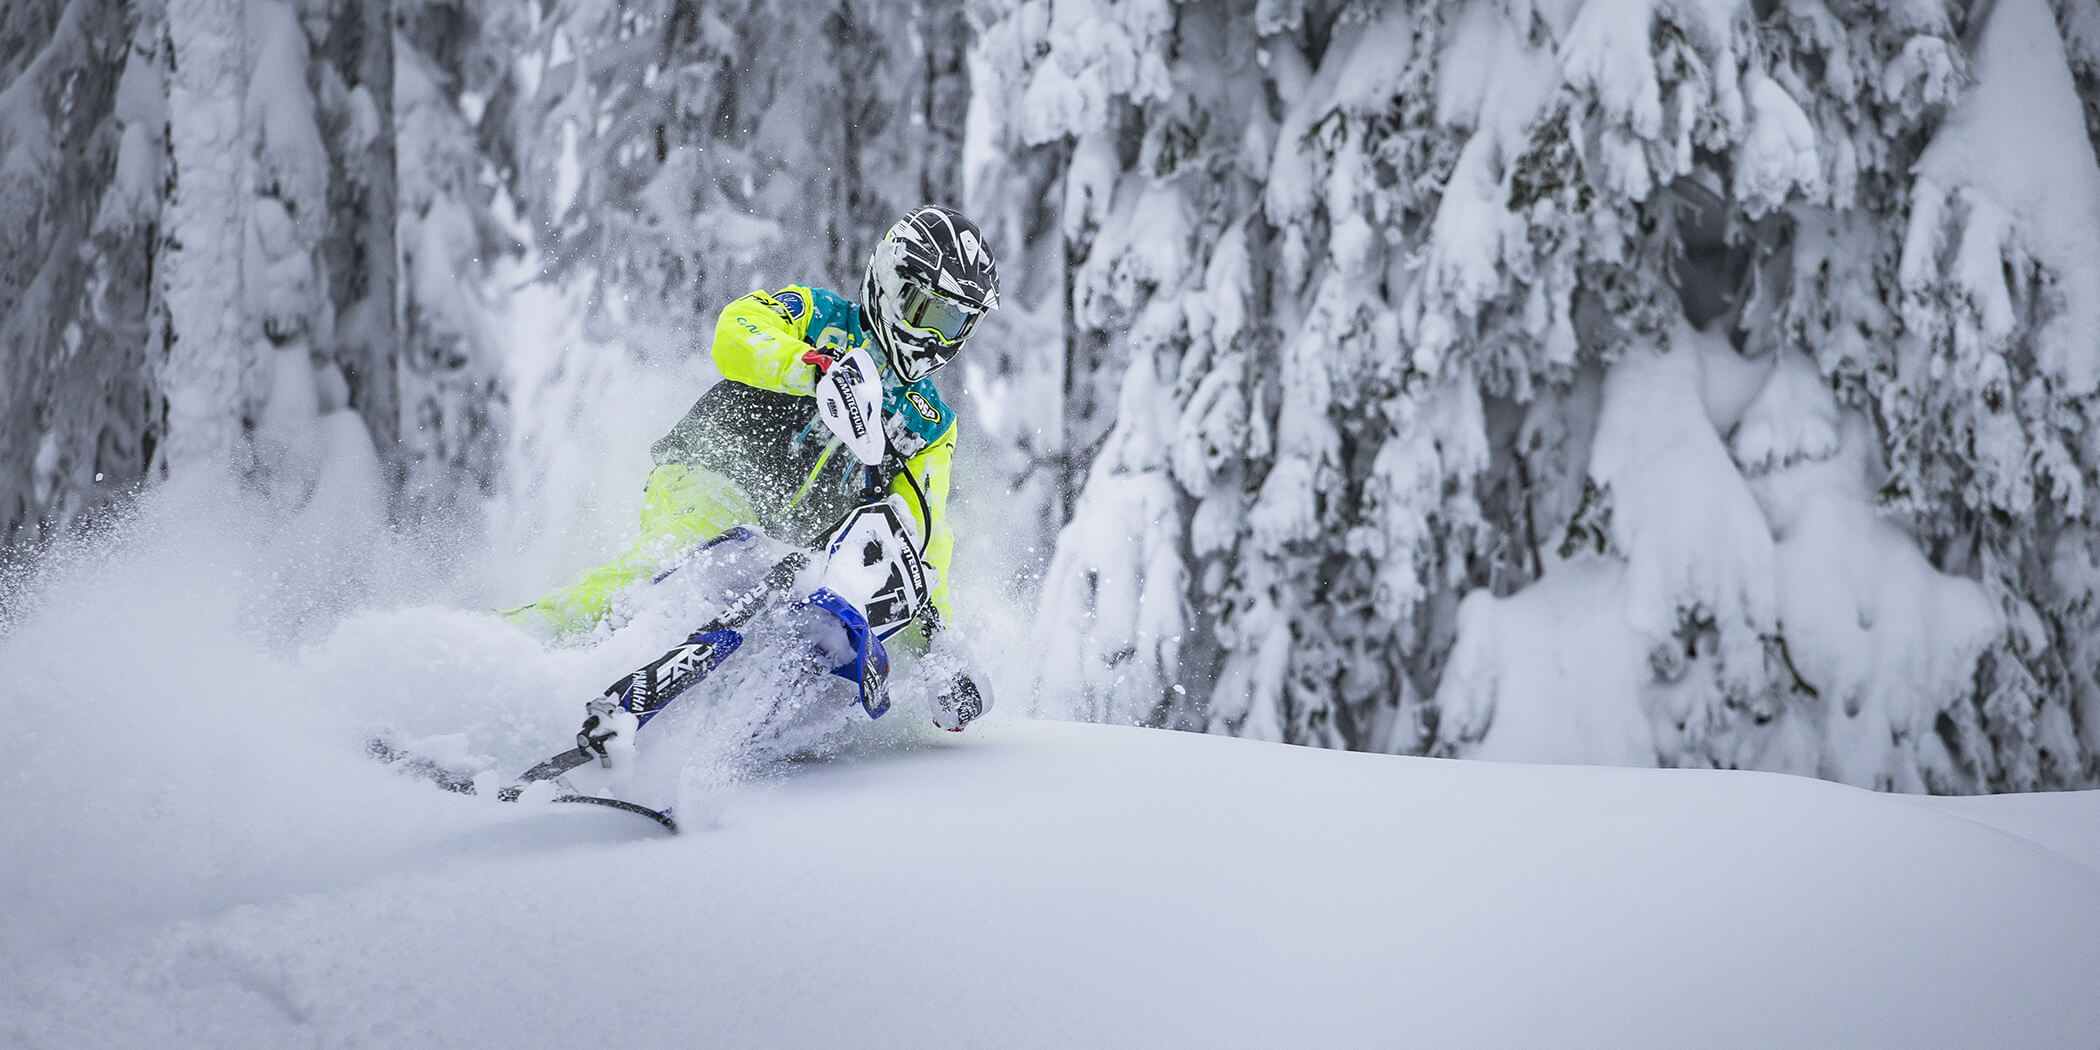 PLAY IN THE POWDER